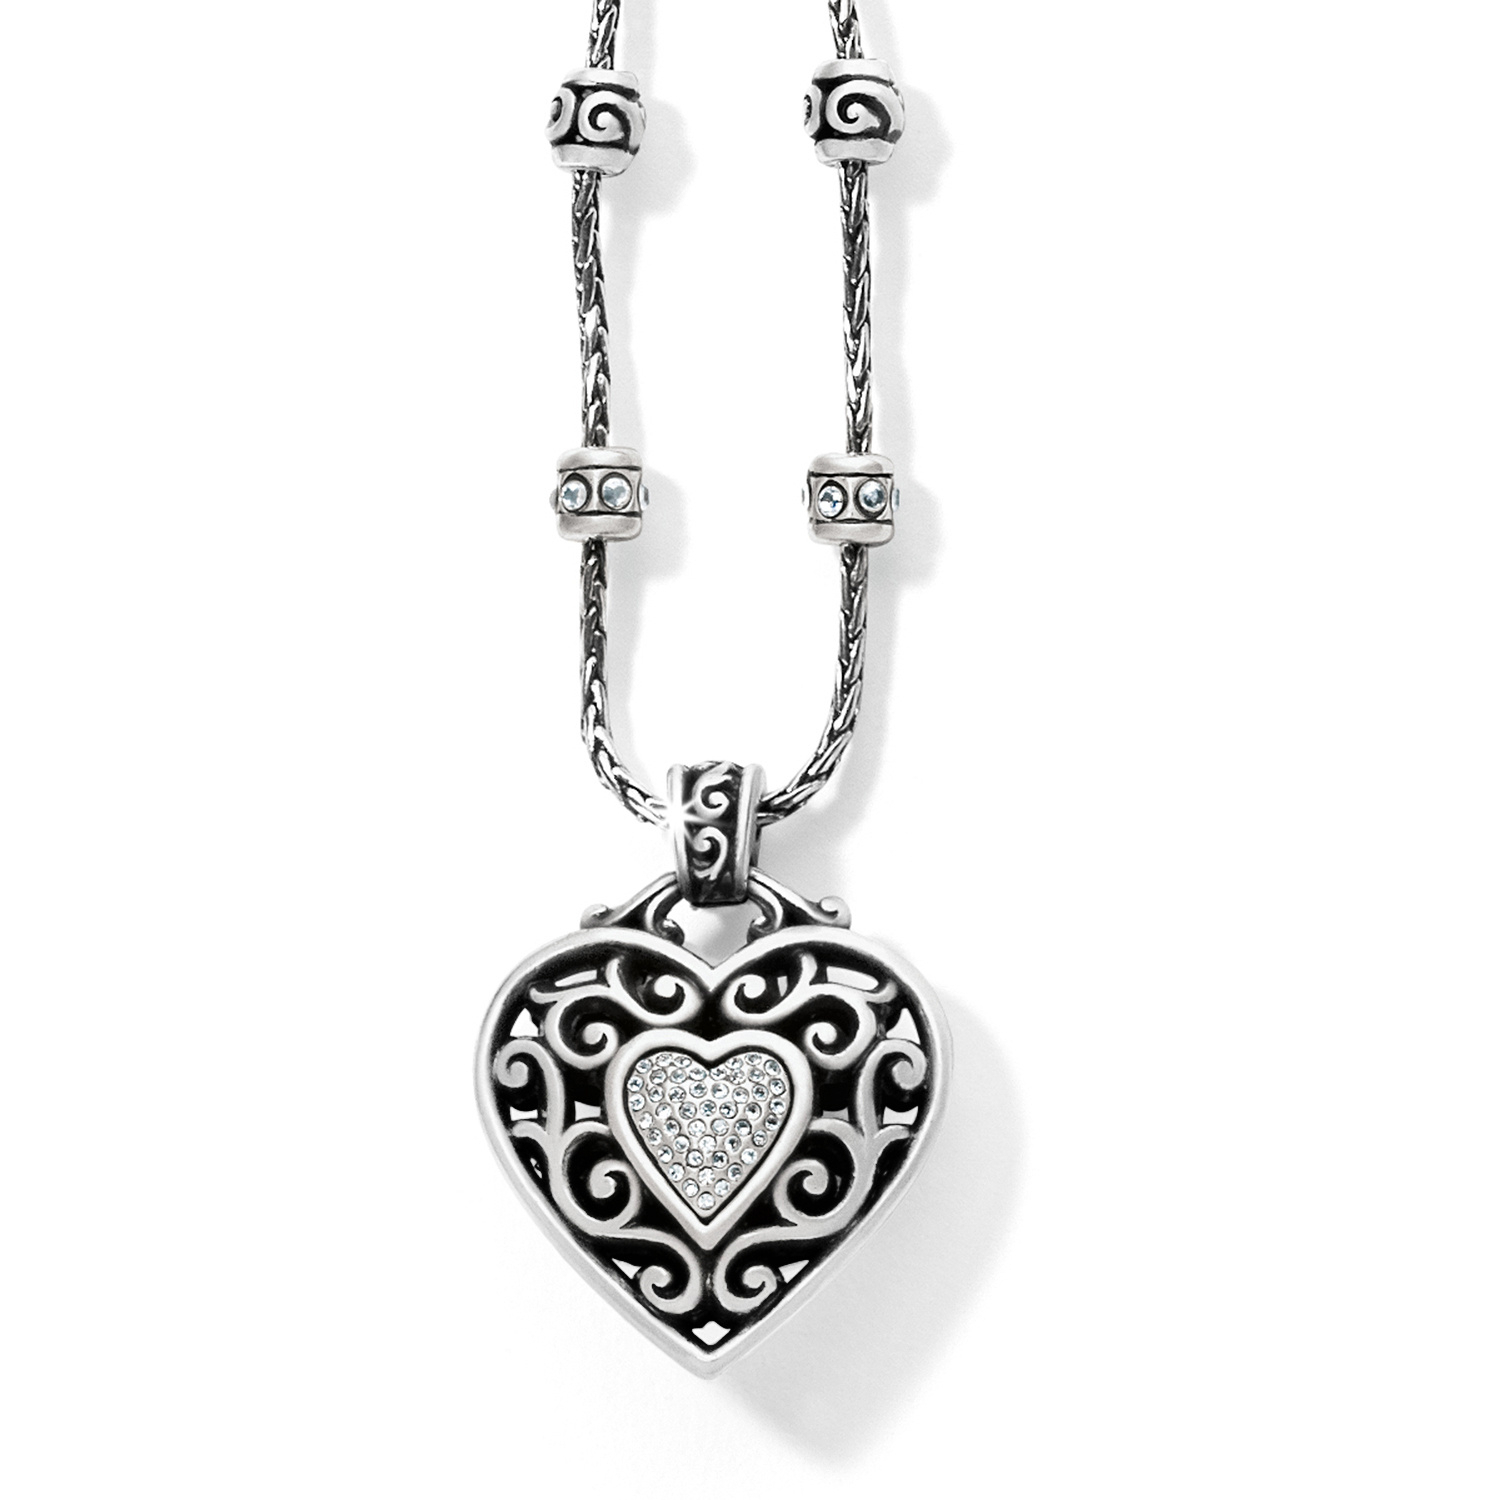 Reno Heart Necklace For Most Popular Joined Hearts Necklaces (Gallery 17 of 25)